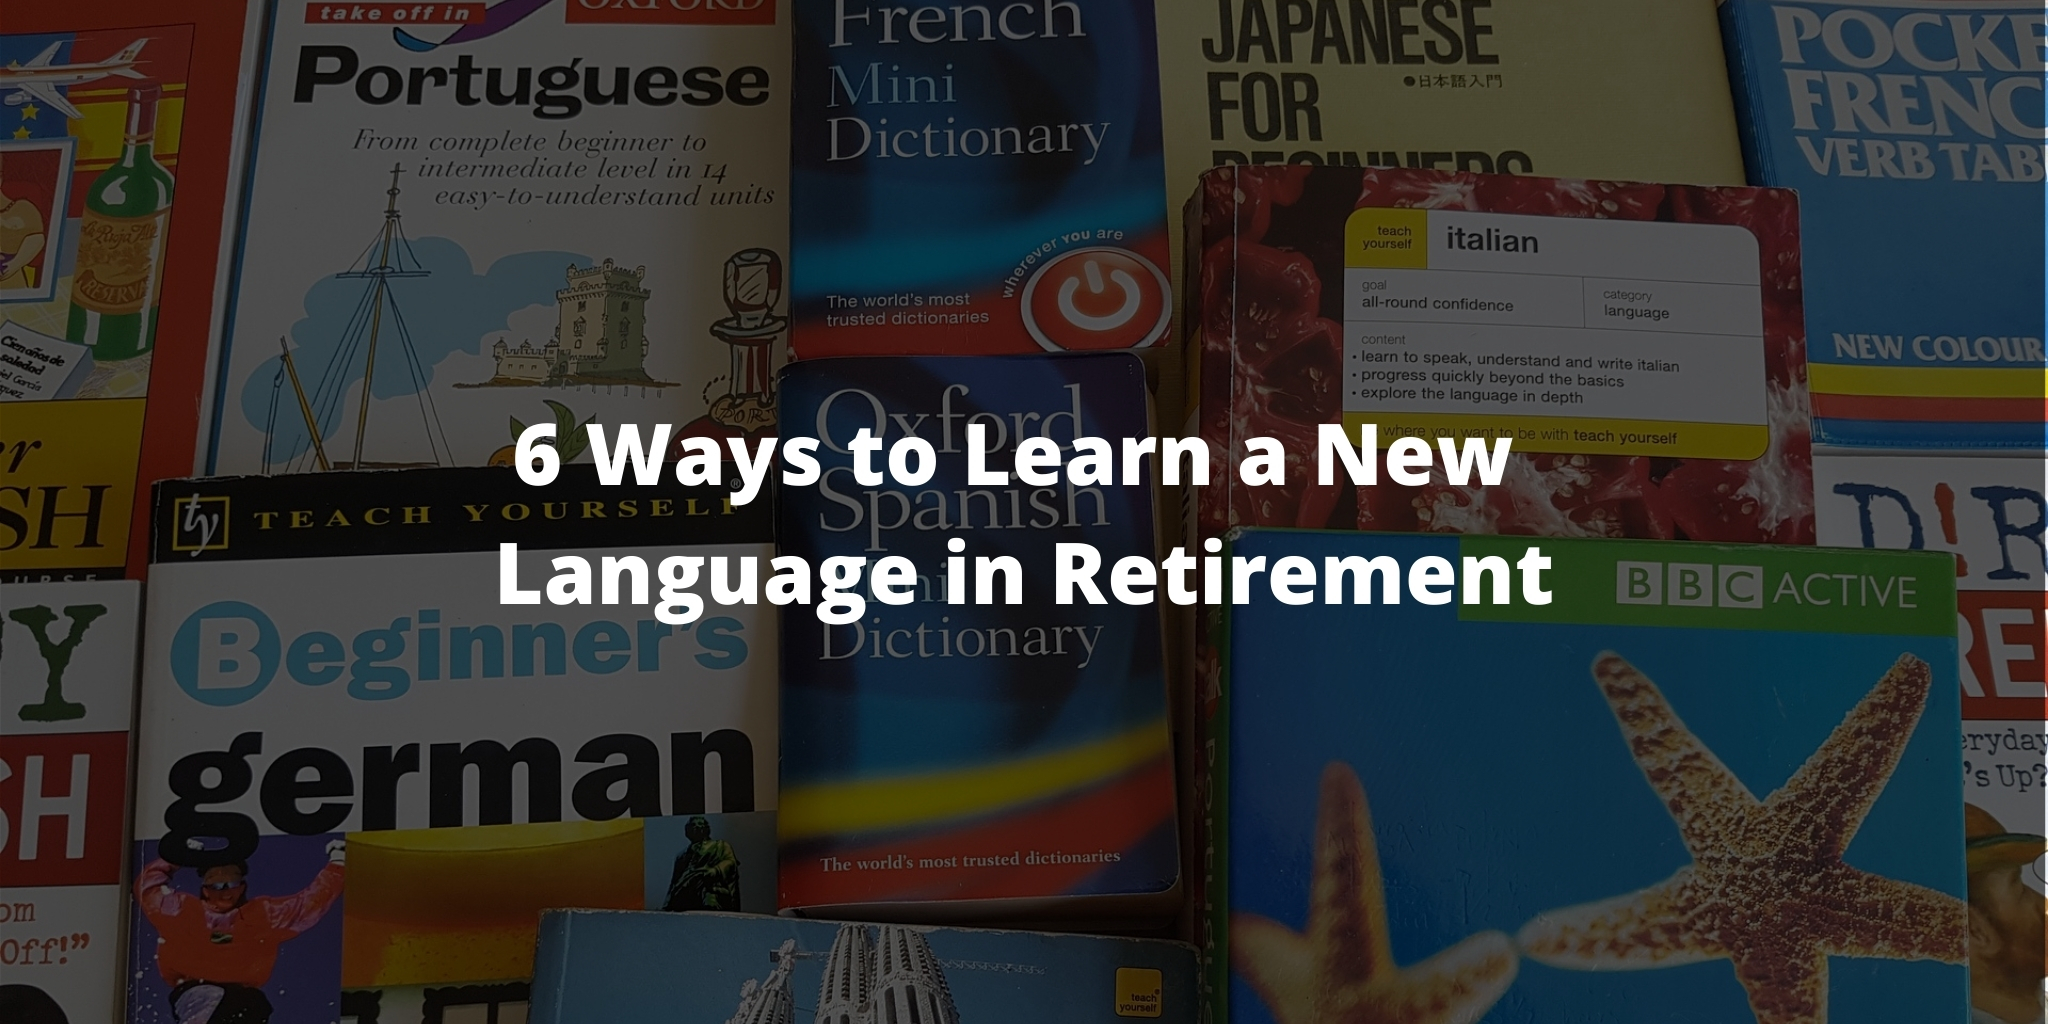 6 Ways to Learn a New Language in Retirement